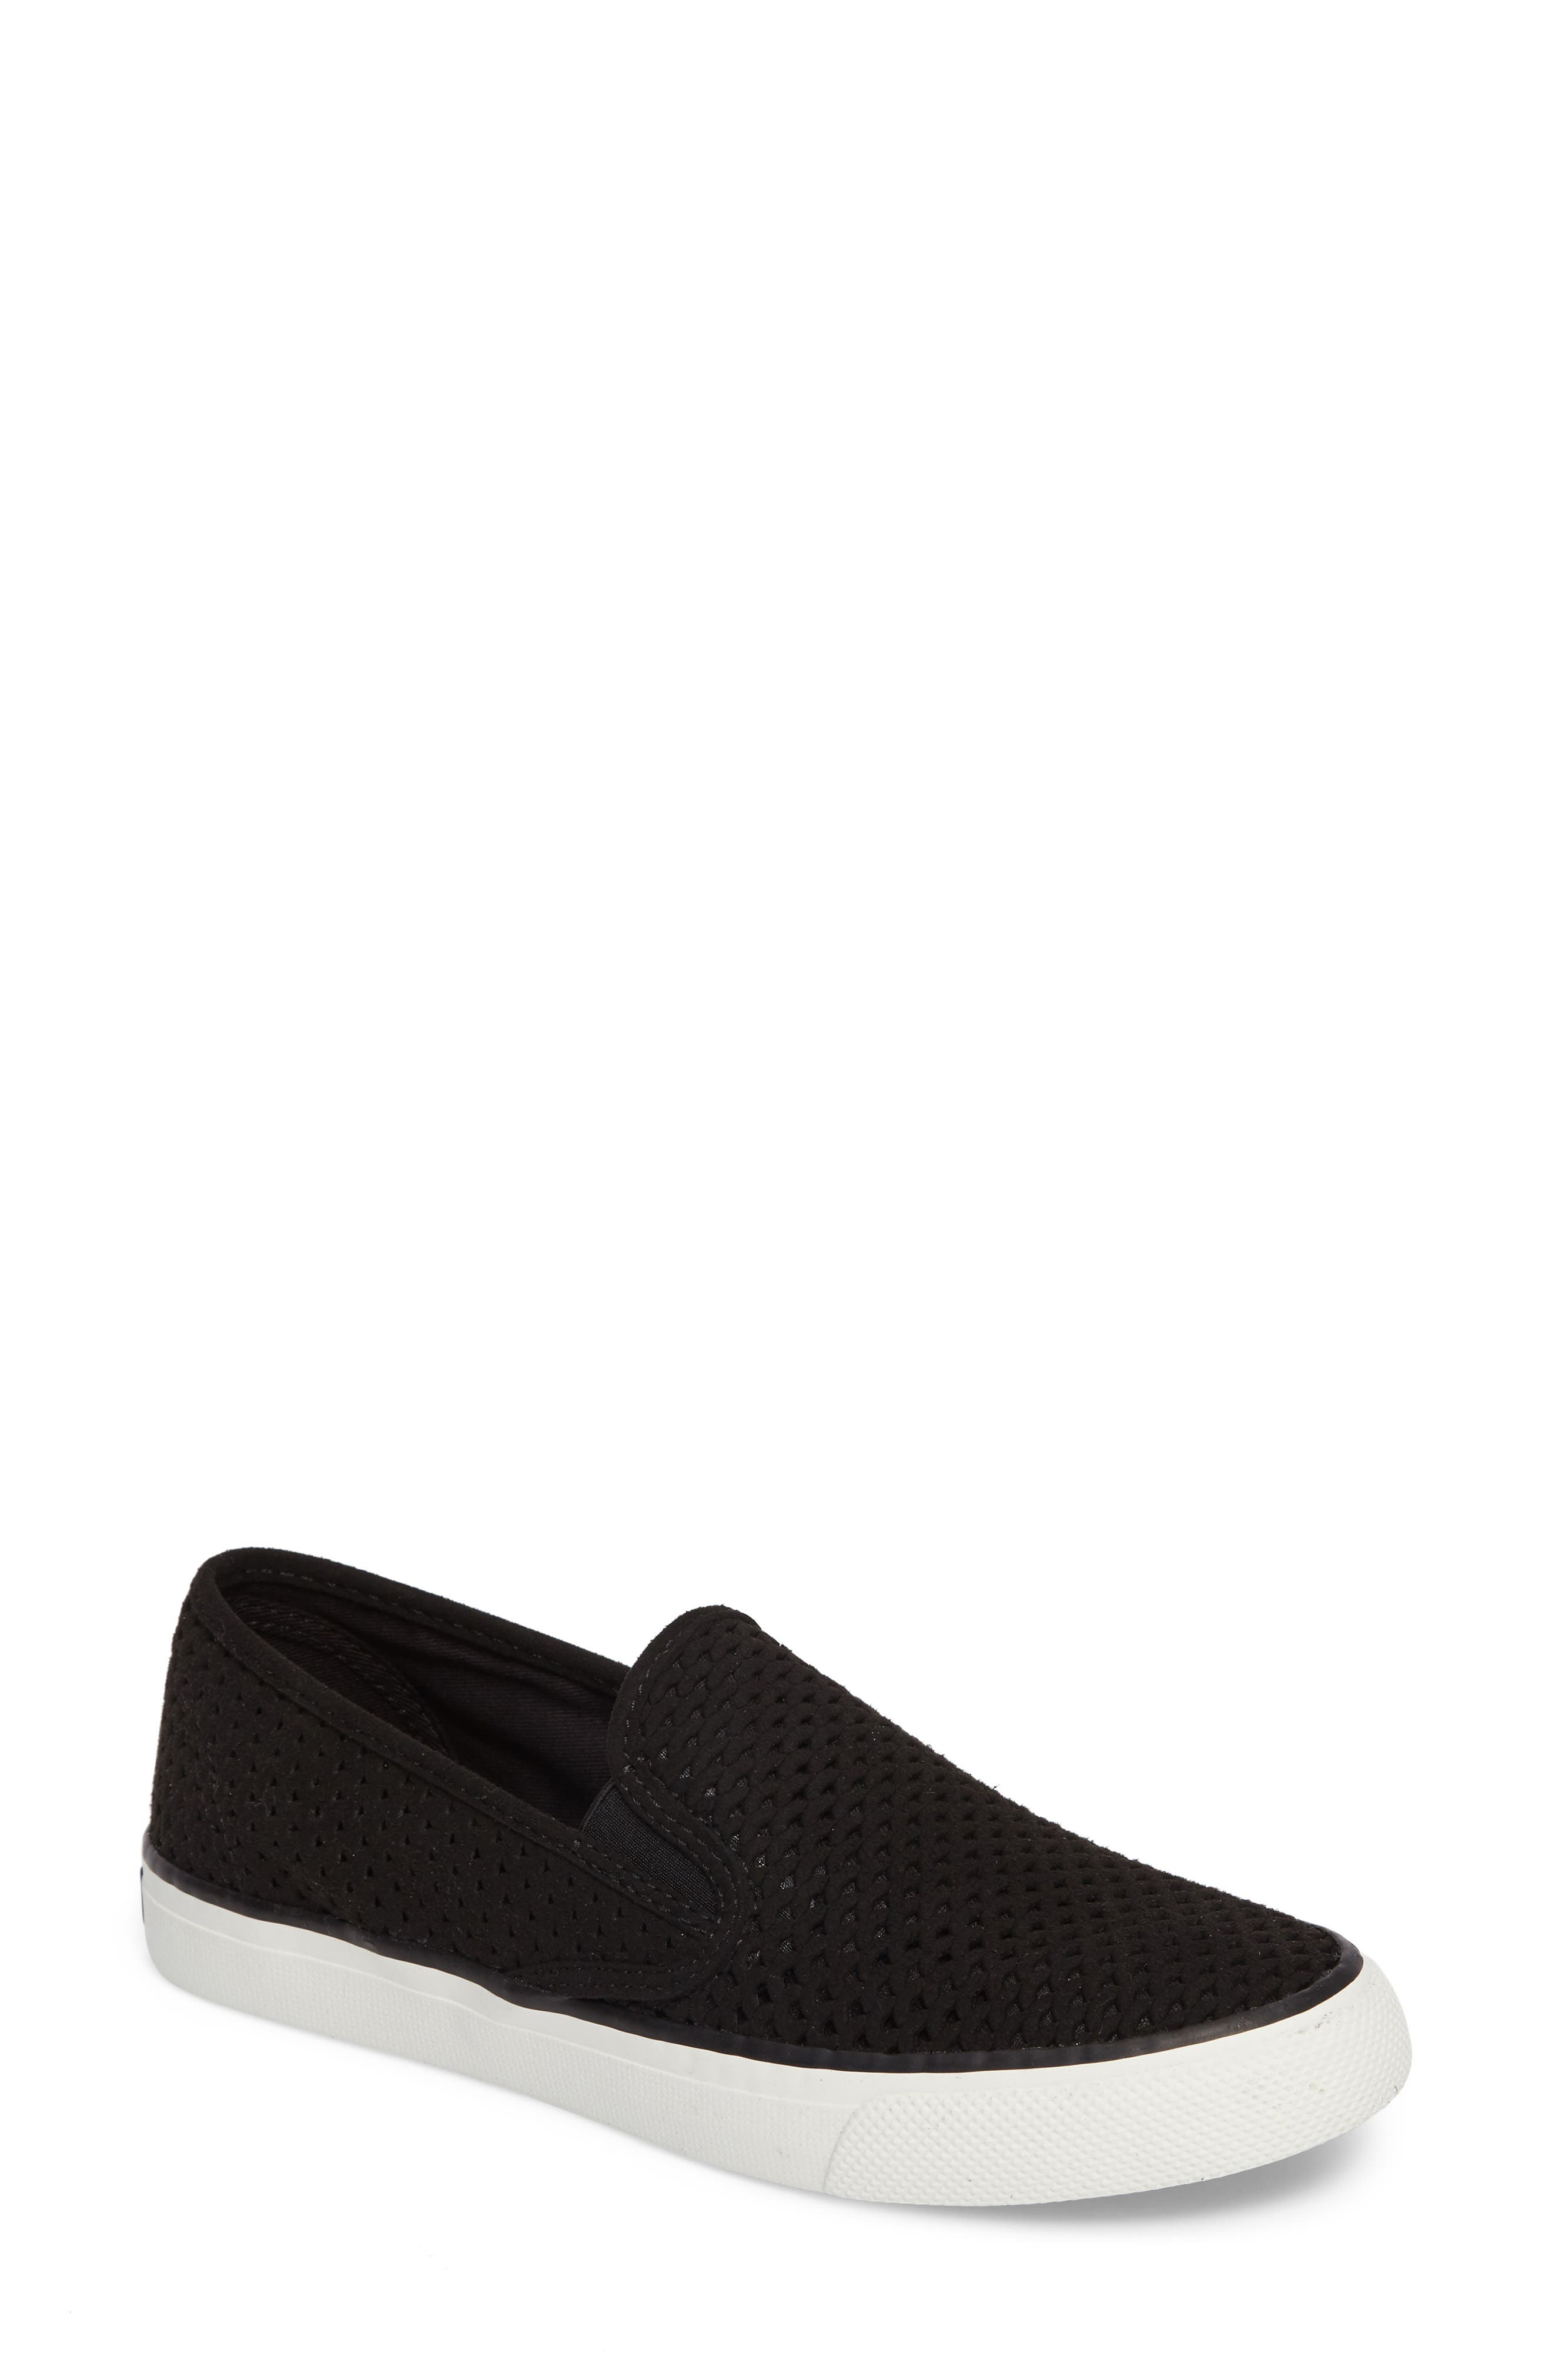 'Seaside' Perforated Slip-On Sneaker,                             Main thumbnail 3, color,